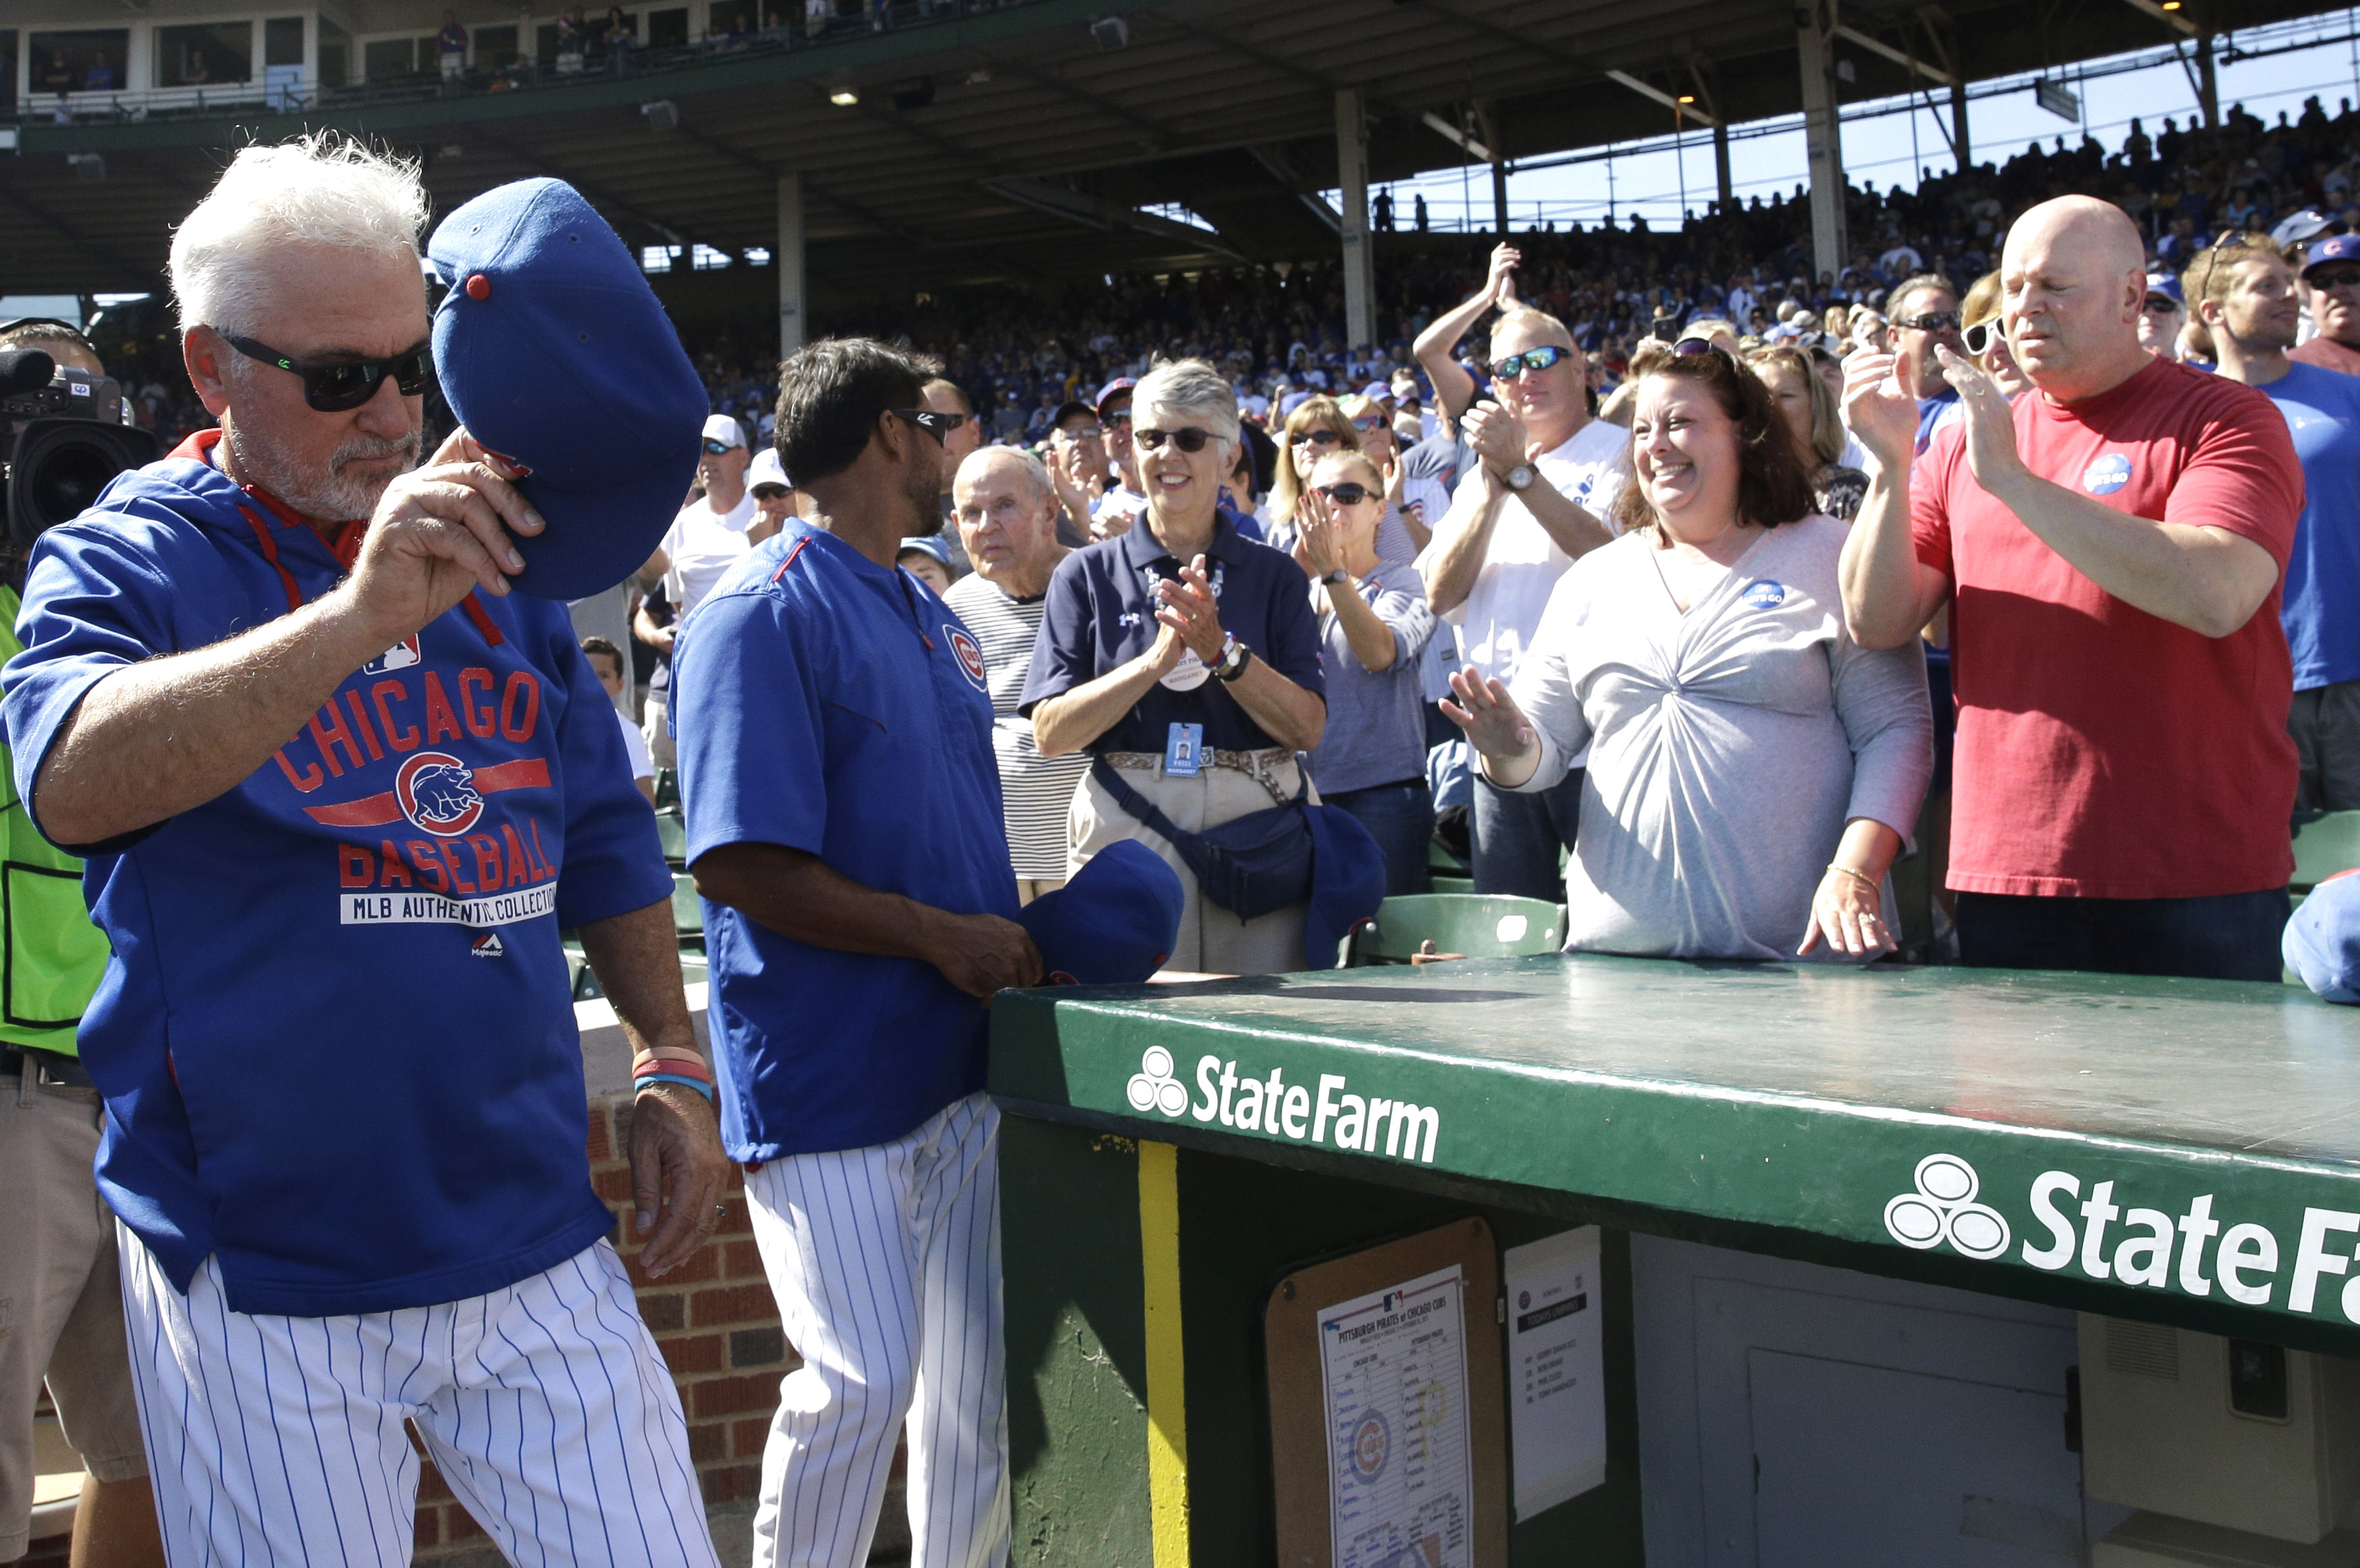 Chicago Cubs manager Joe Maddon acknowledges the crowd before a baseball game against the Pittsburgh Pirates, Saturday, Sept. 26, 2015, in Chicago. (AP Photo/Nam Y. Huh)